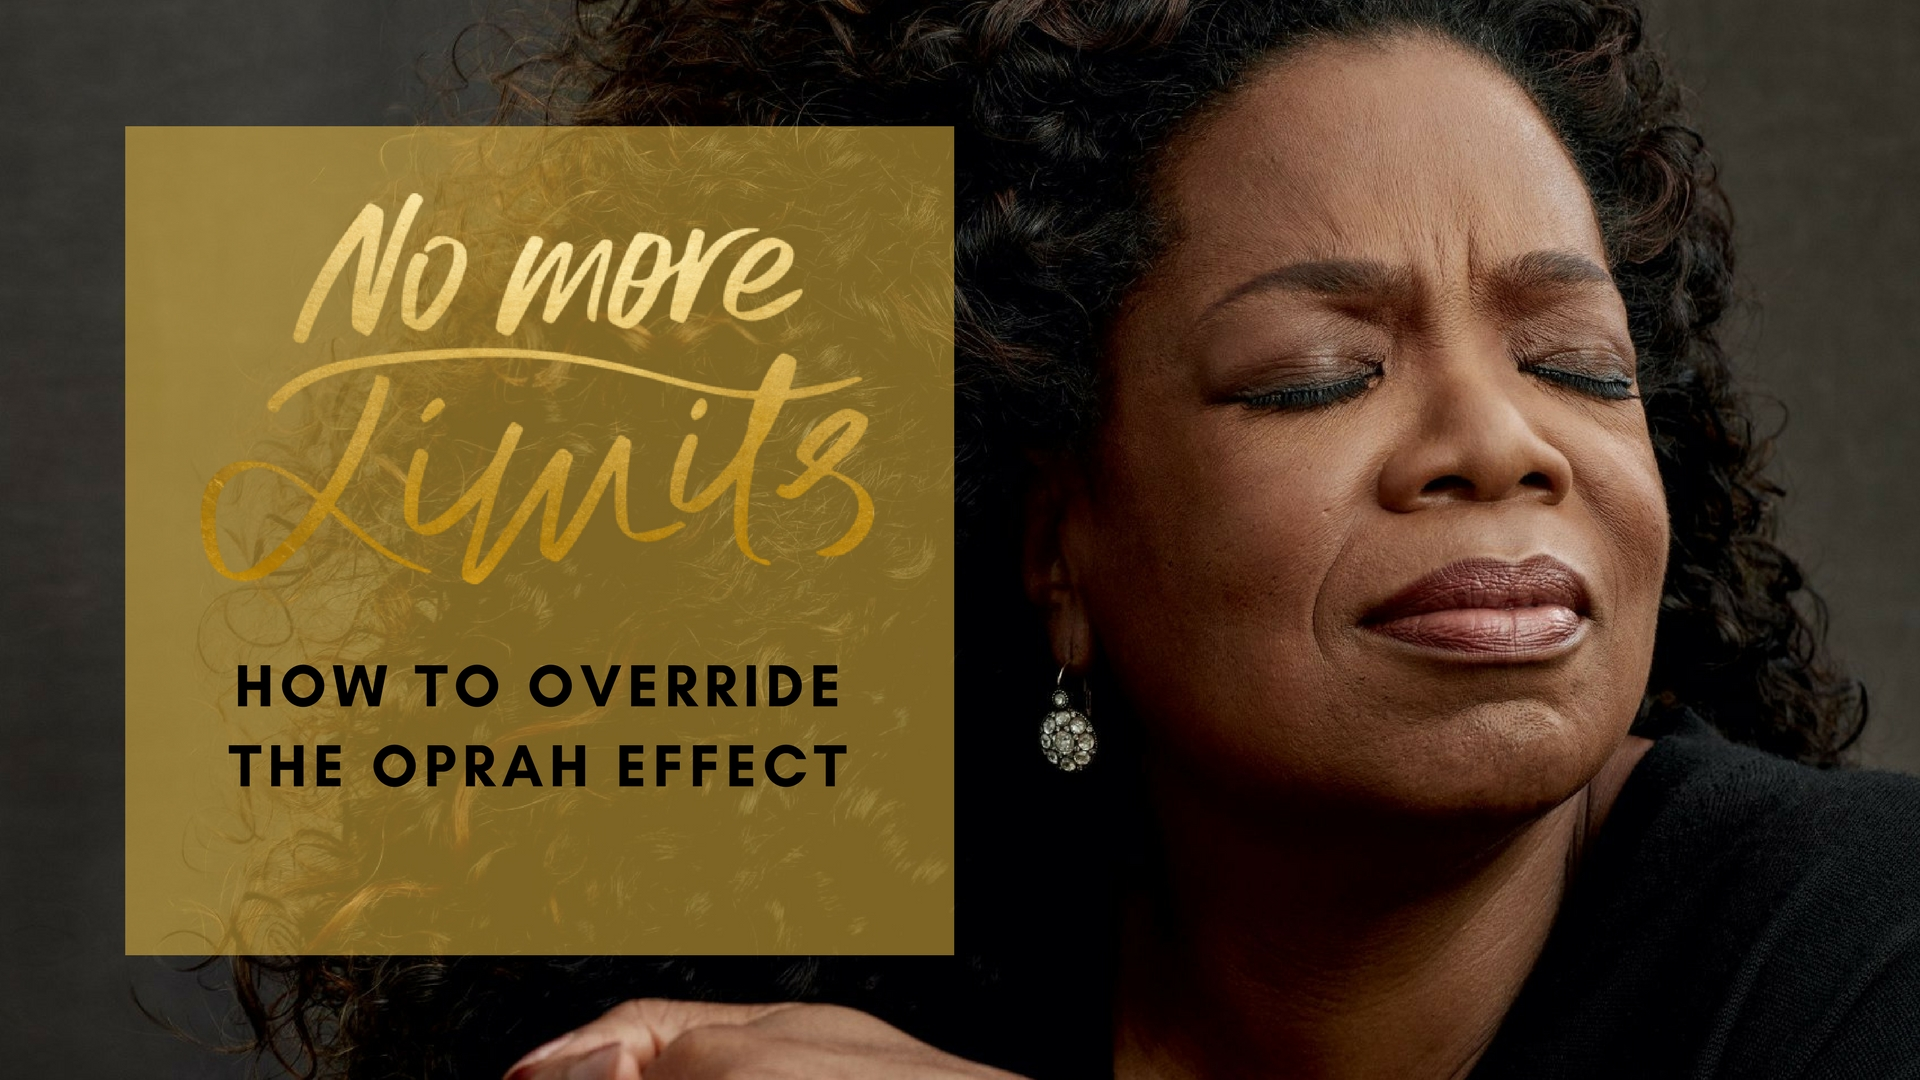 Override_Oprah_Effect_Post.jpg